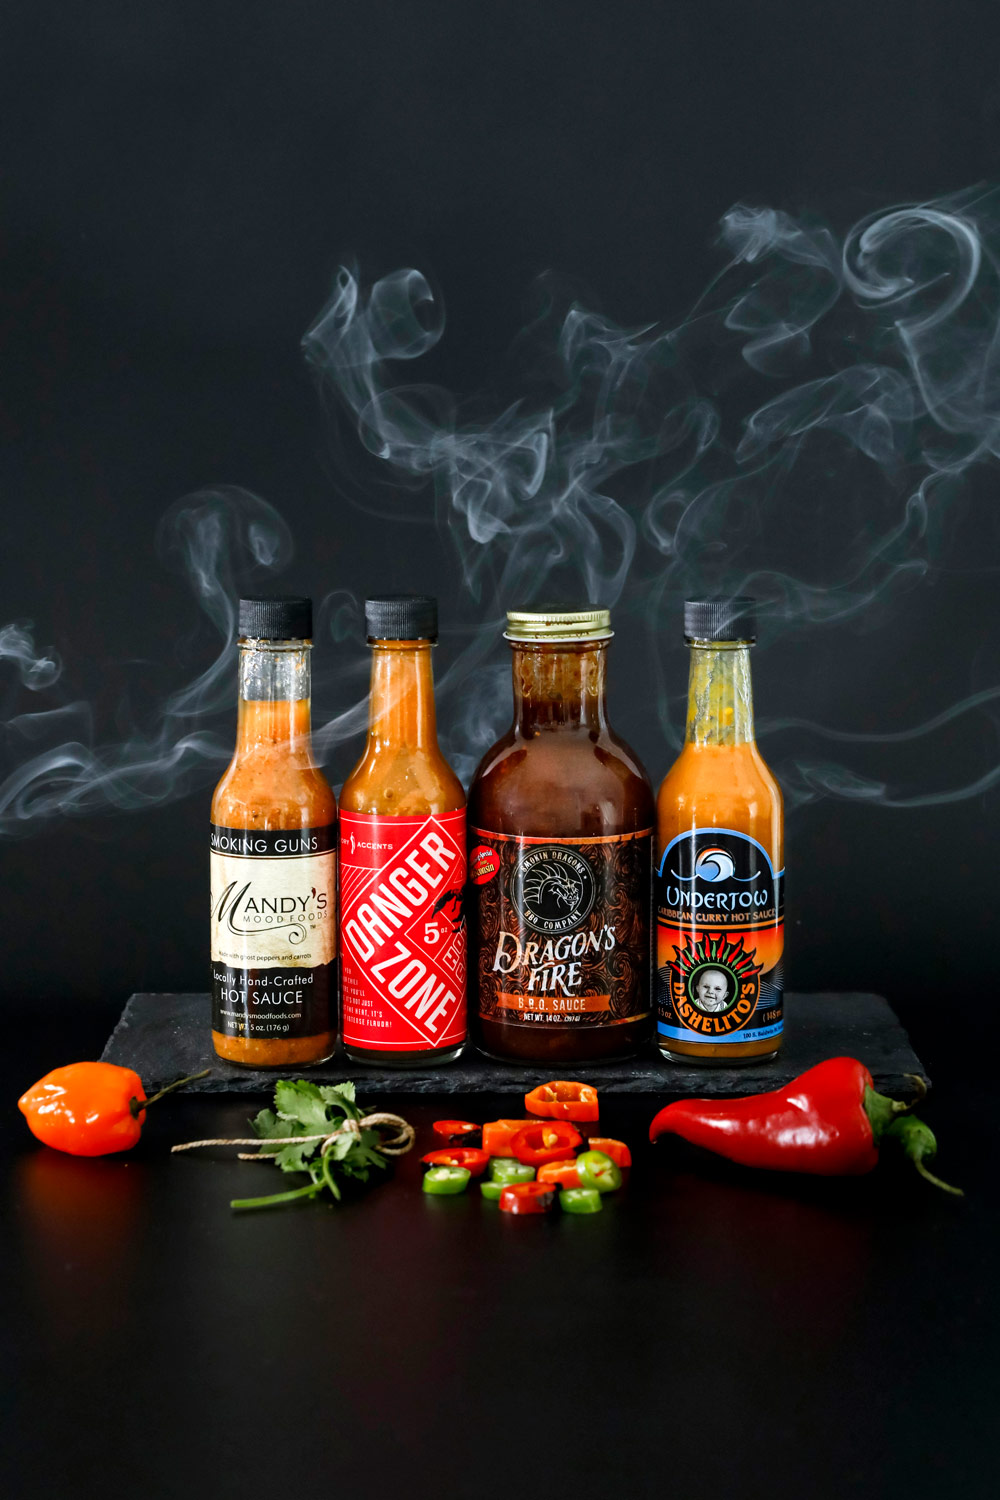 hot-sauce-food-photography-ruthie-hauge-madison-wi-photographer-dashelito's-smokin-dragons-bbq-savory-accents-mandy's-mood-food.jpg